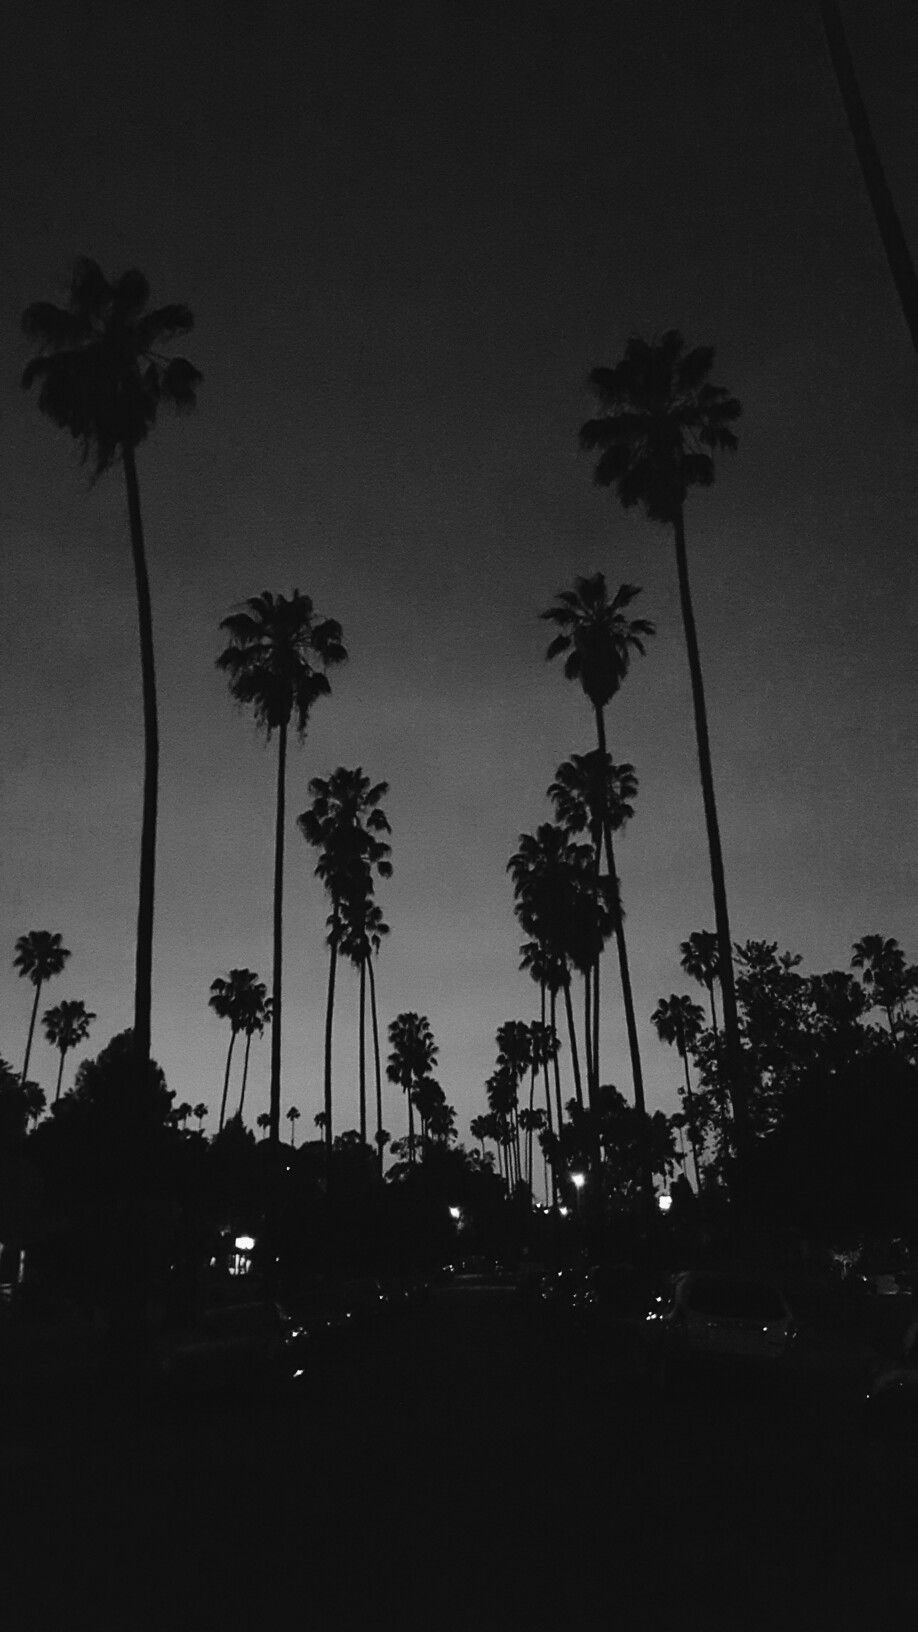 La Vibes Black And White Picture Wall Black Aesthetic Wallpaper Black And White Aesthetic